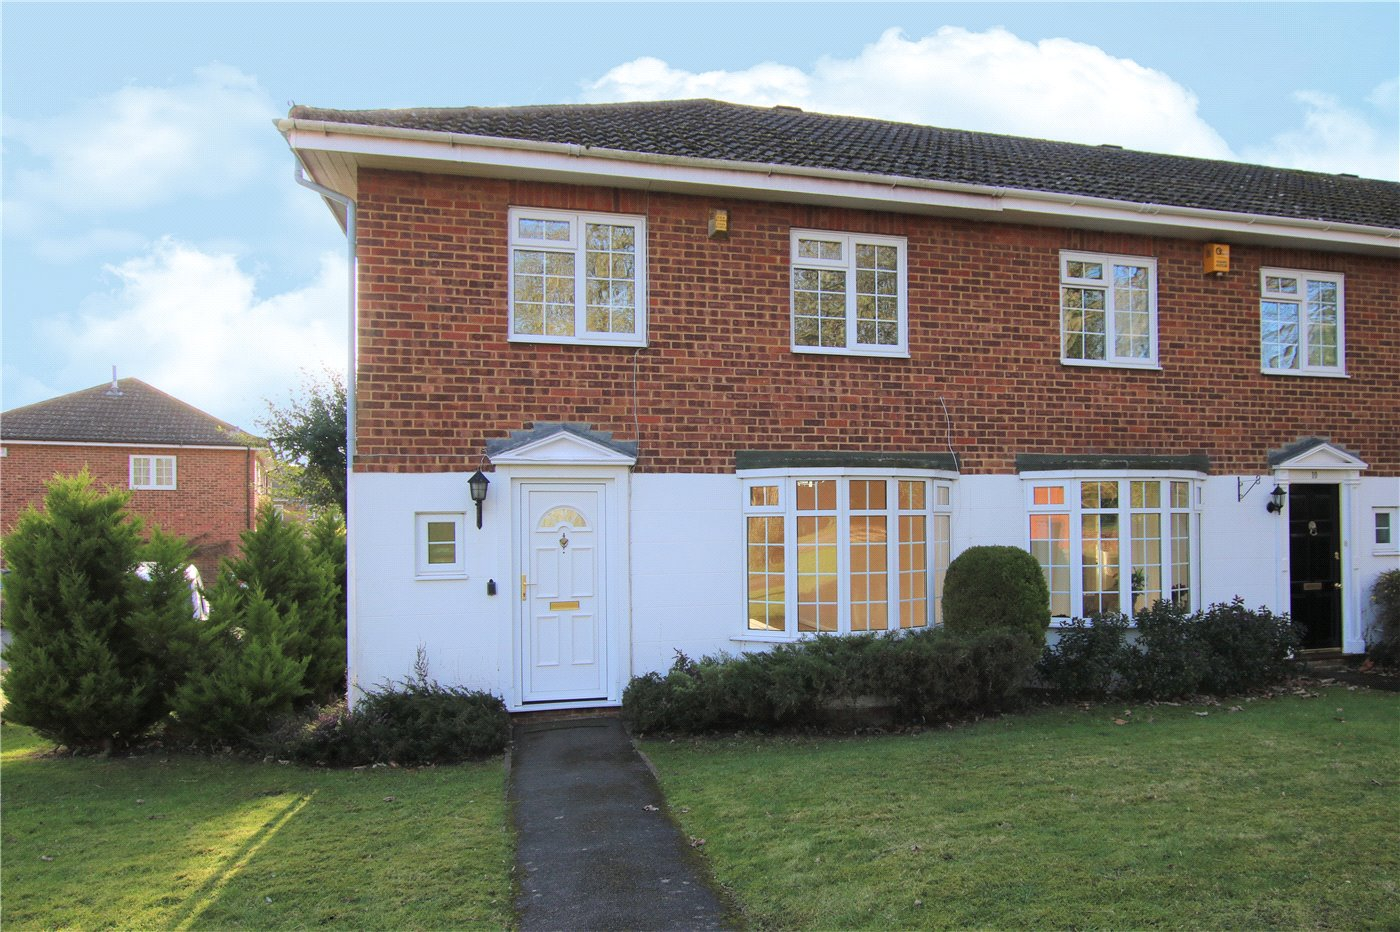 3 Bedrooms End Of Terrace House for sale in Epsom Court, Coley Avenue, Reading, Berkshire, RG1